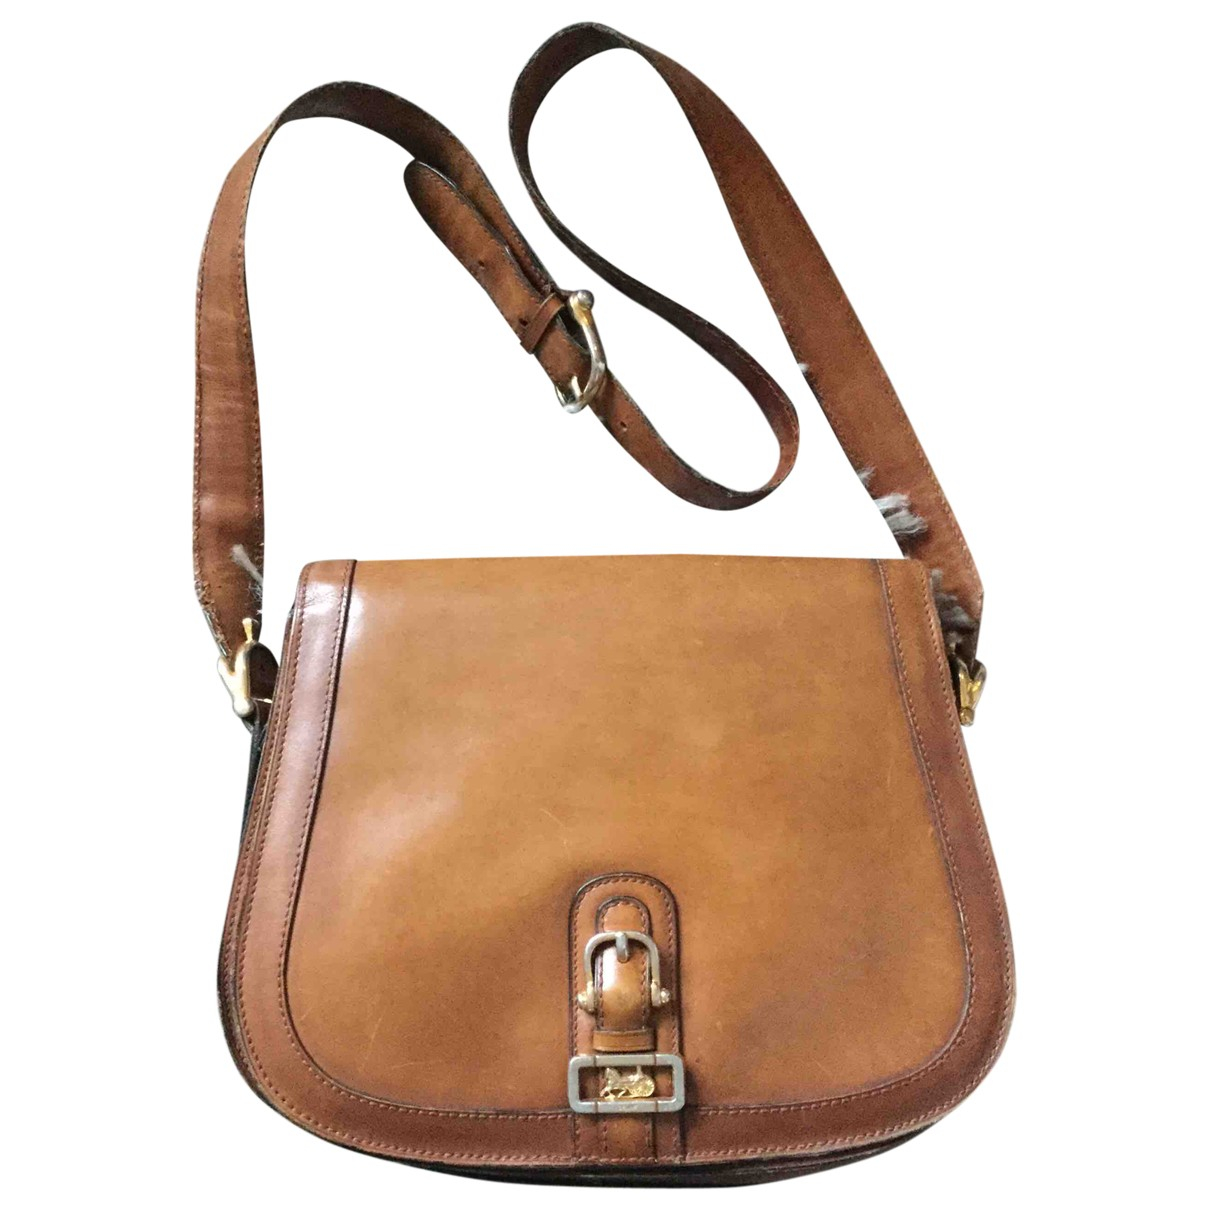 Celine \N Brown Leather handbag for Women \N